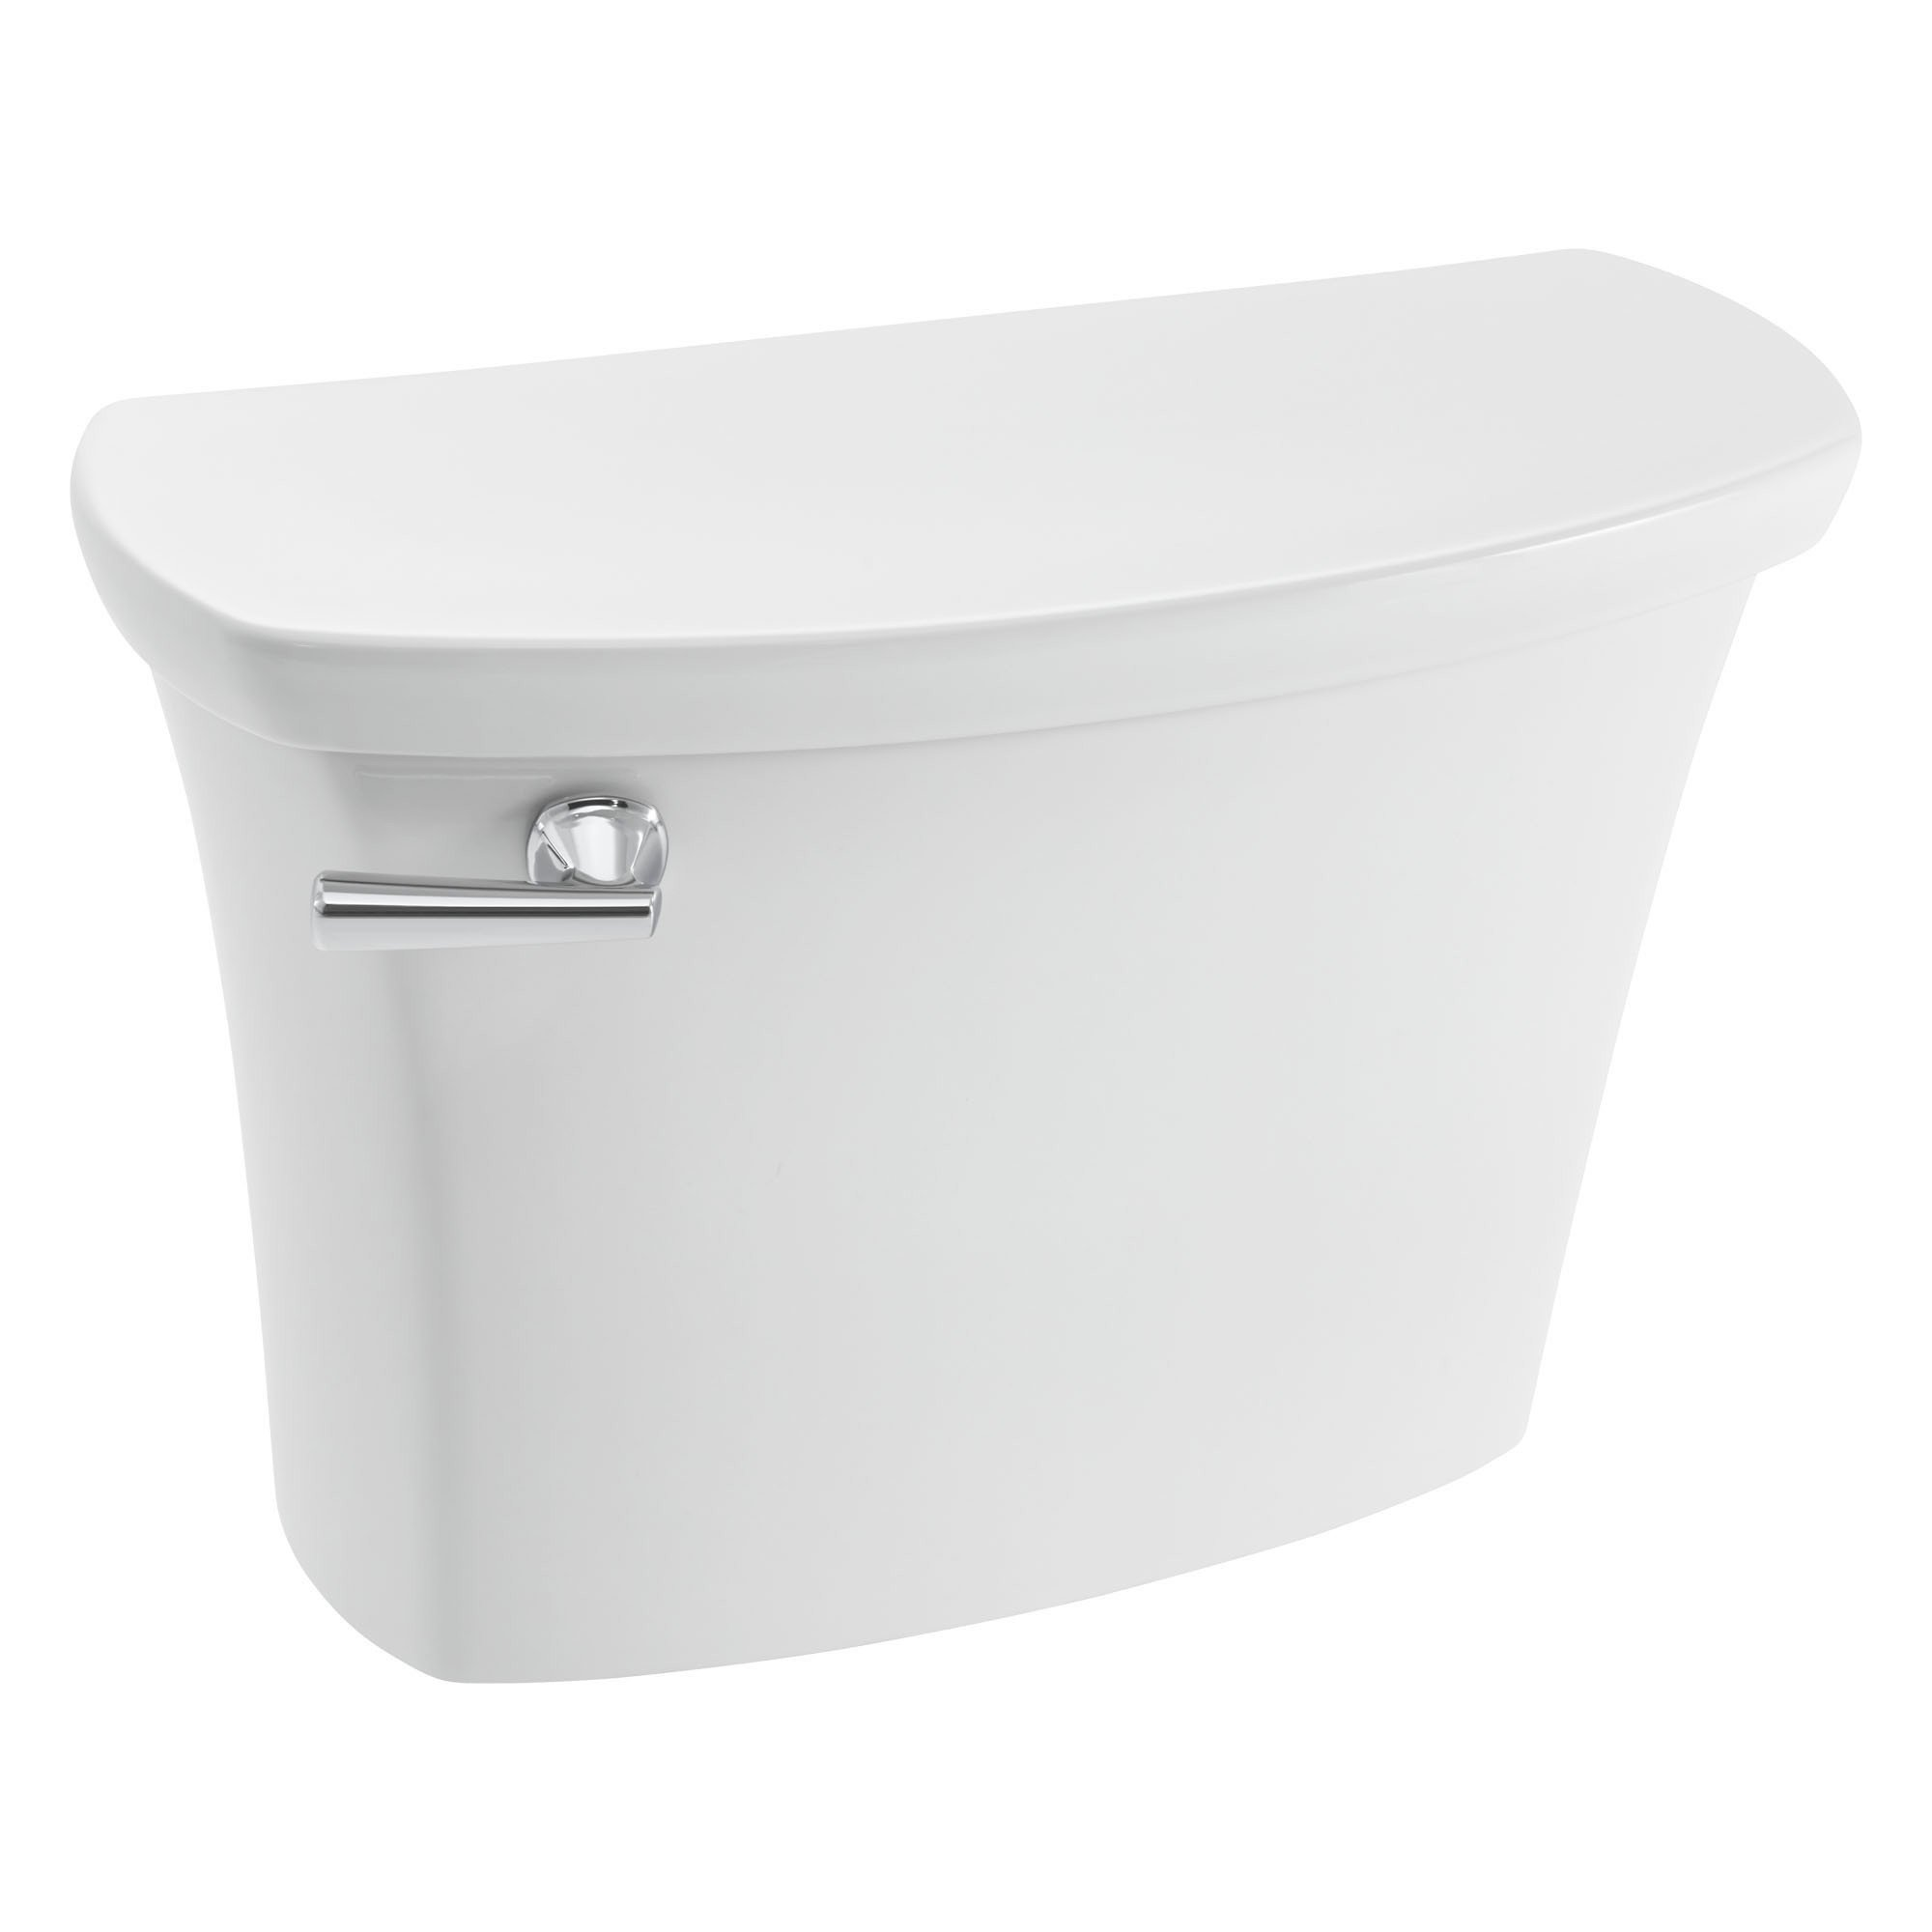 American Standard 4519A104.020 Edgemere 1.0 gpf / 3.8 lpf Toilet Complete with Coupling Components and Tank Trim, White